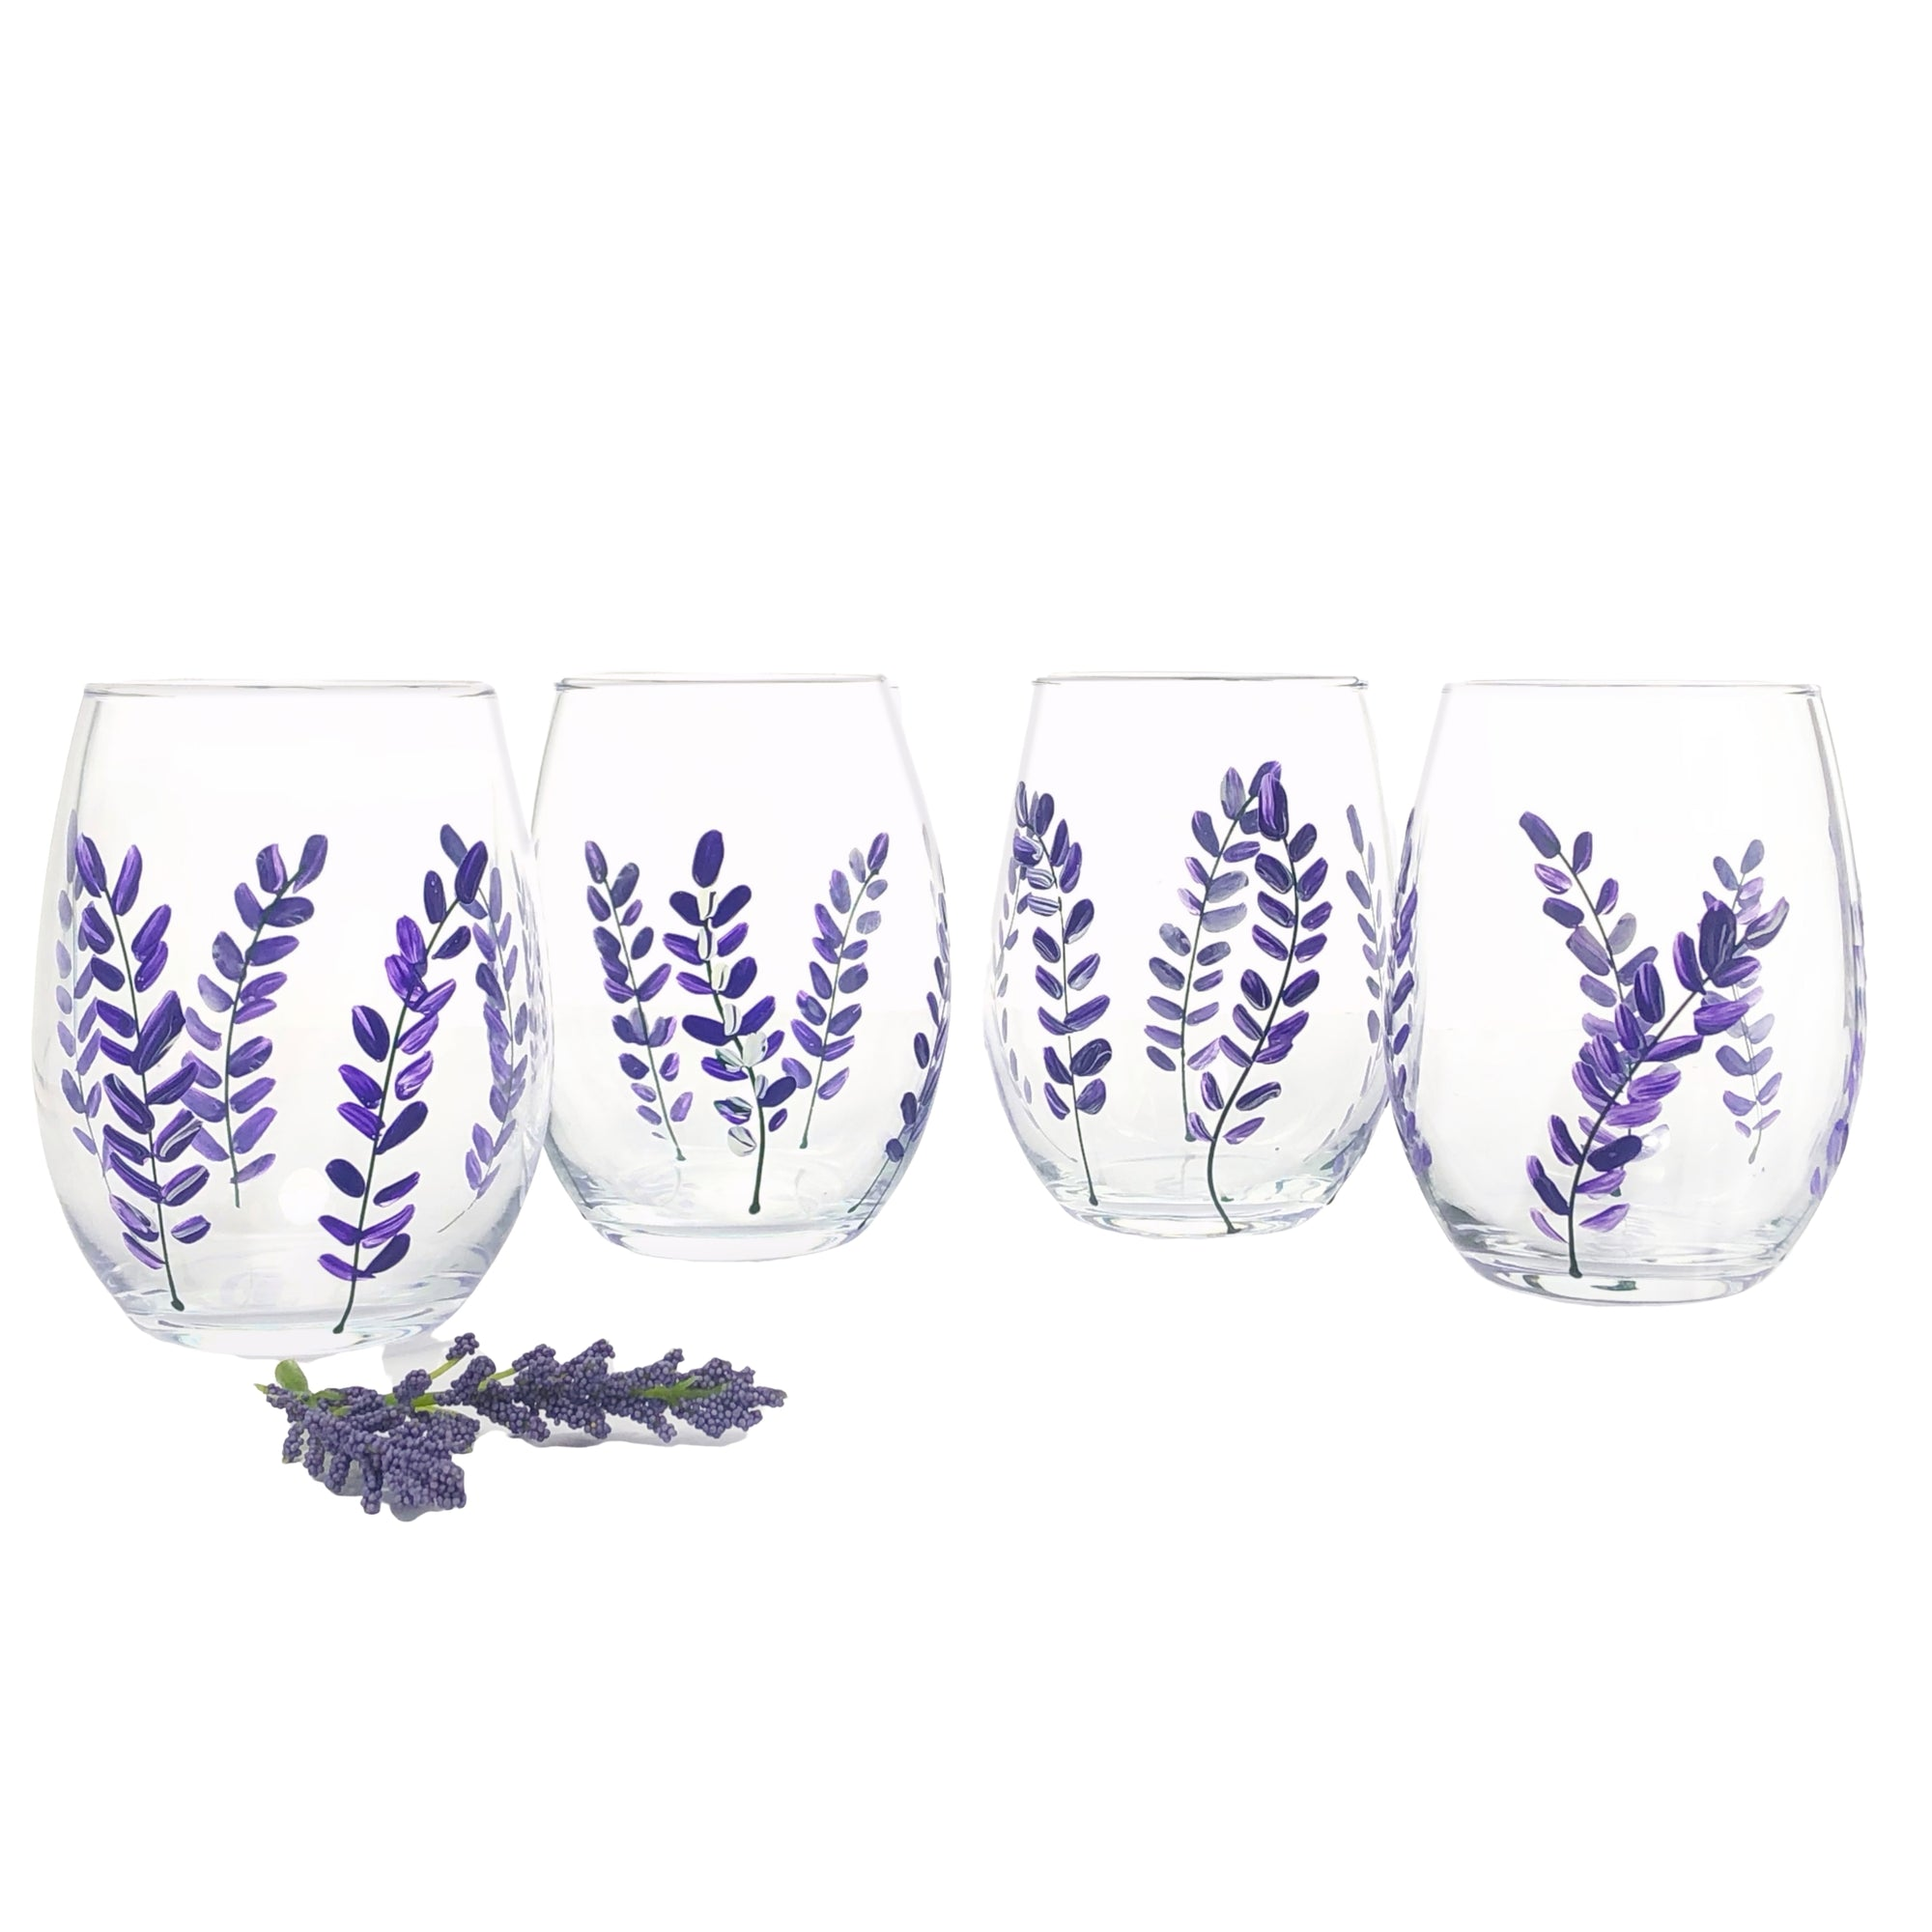 Lavender flower Stemless Wine Glasses -  Set of 4 - Hand Painted